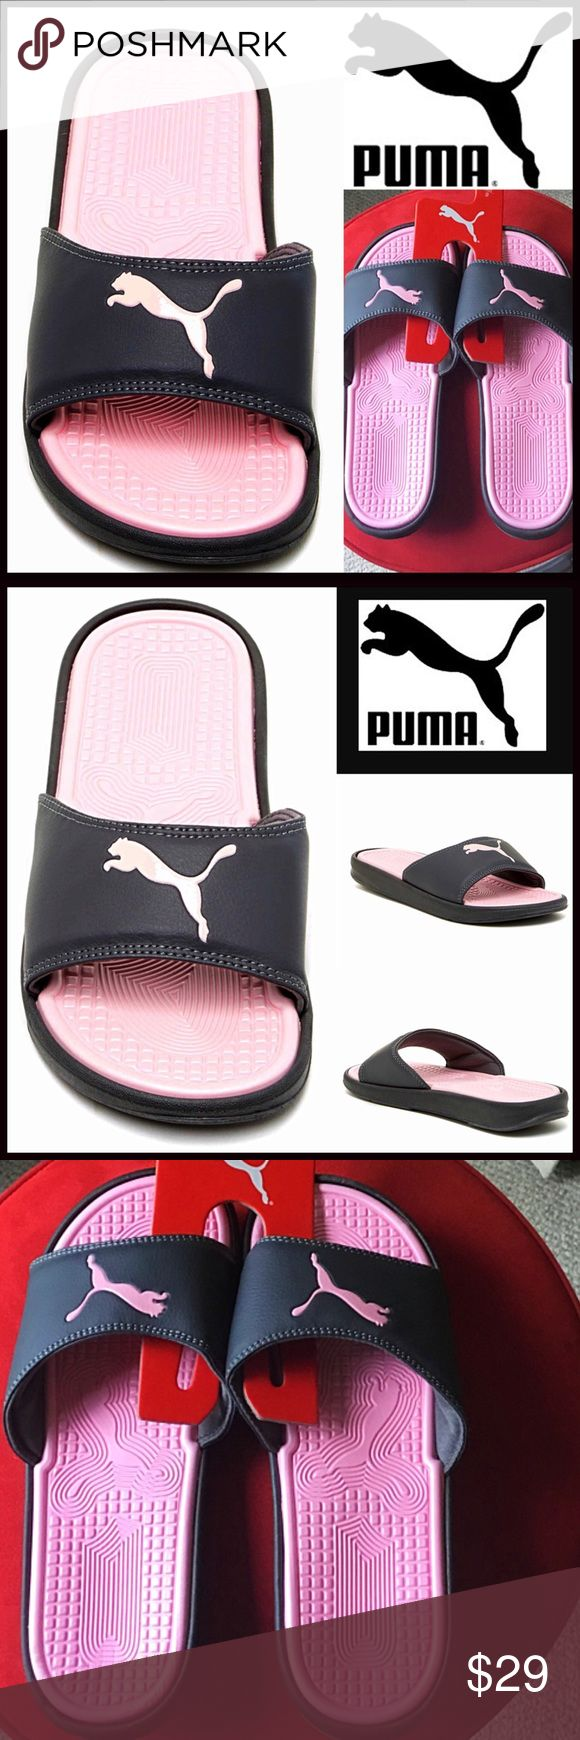 ⭐️⭐️ PUMA SANDALS Flats Slides Flip Flops NEW WITH TAGS ***See sizing note below PUMA SANDALS Flats Slides Flip Flops * Wide single vamp strap w/logo detail * Rubber 'jelly' flexible ballet flat soles * Water resistant * Open toe and slip on style. * True to size; ****Tagged 9, whole sizes only in this style, will fit approx sizes 8.5 & 9 Fabric: PU Upper & EVA Sole Color: Pastel Rose-Orange & charcoal Item: flatform No Trades ✅ Offers Considered*✅ *Please use the blue 'offer' button to…